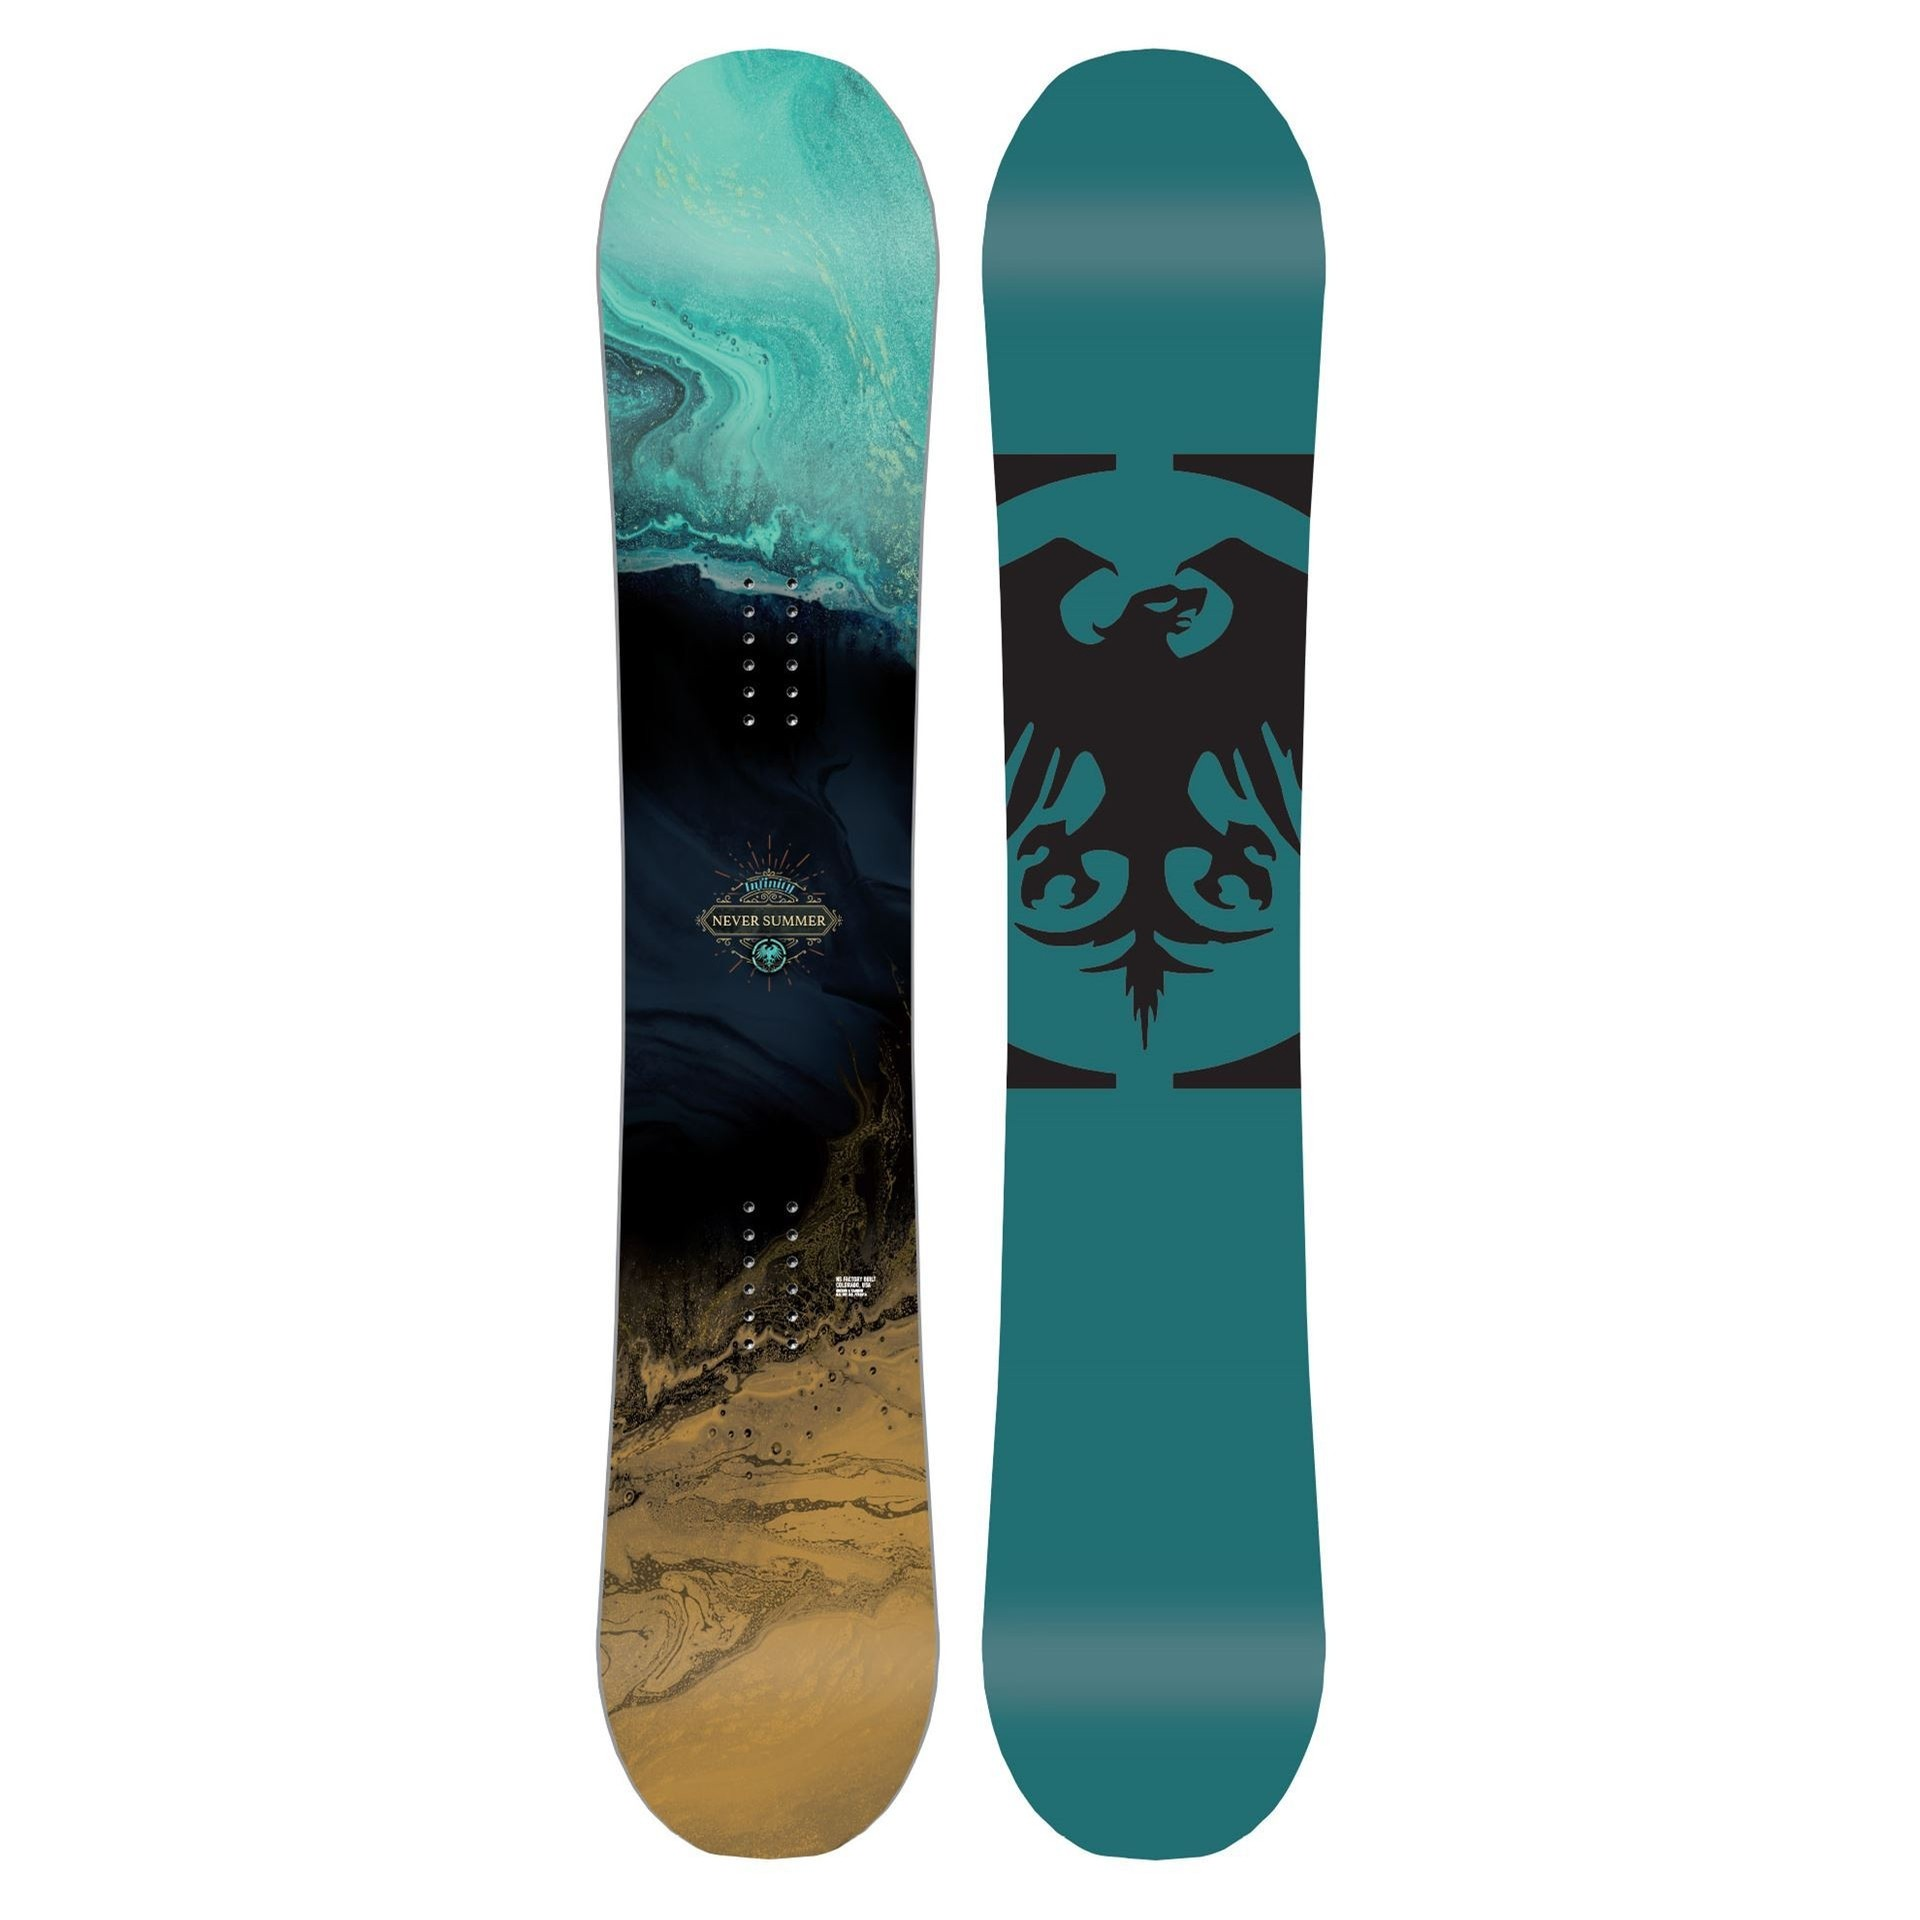 Infinity Snowboard (2019-20)